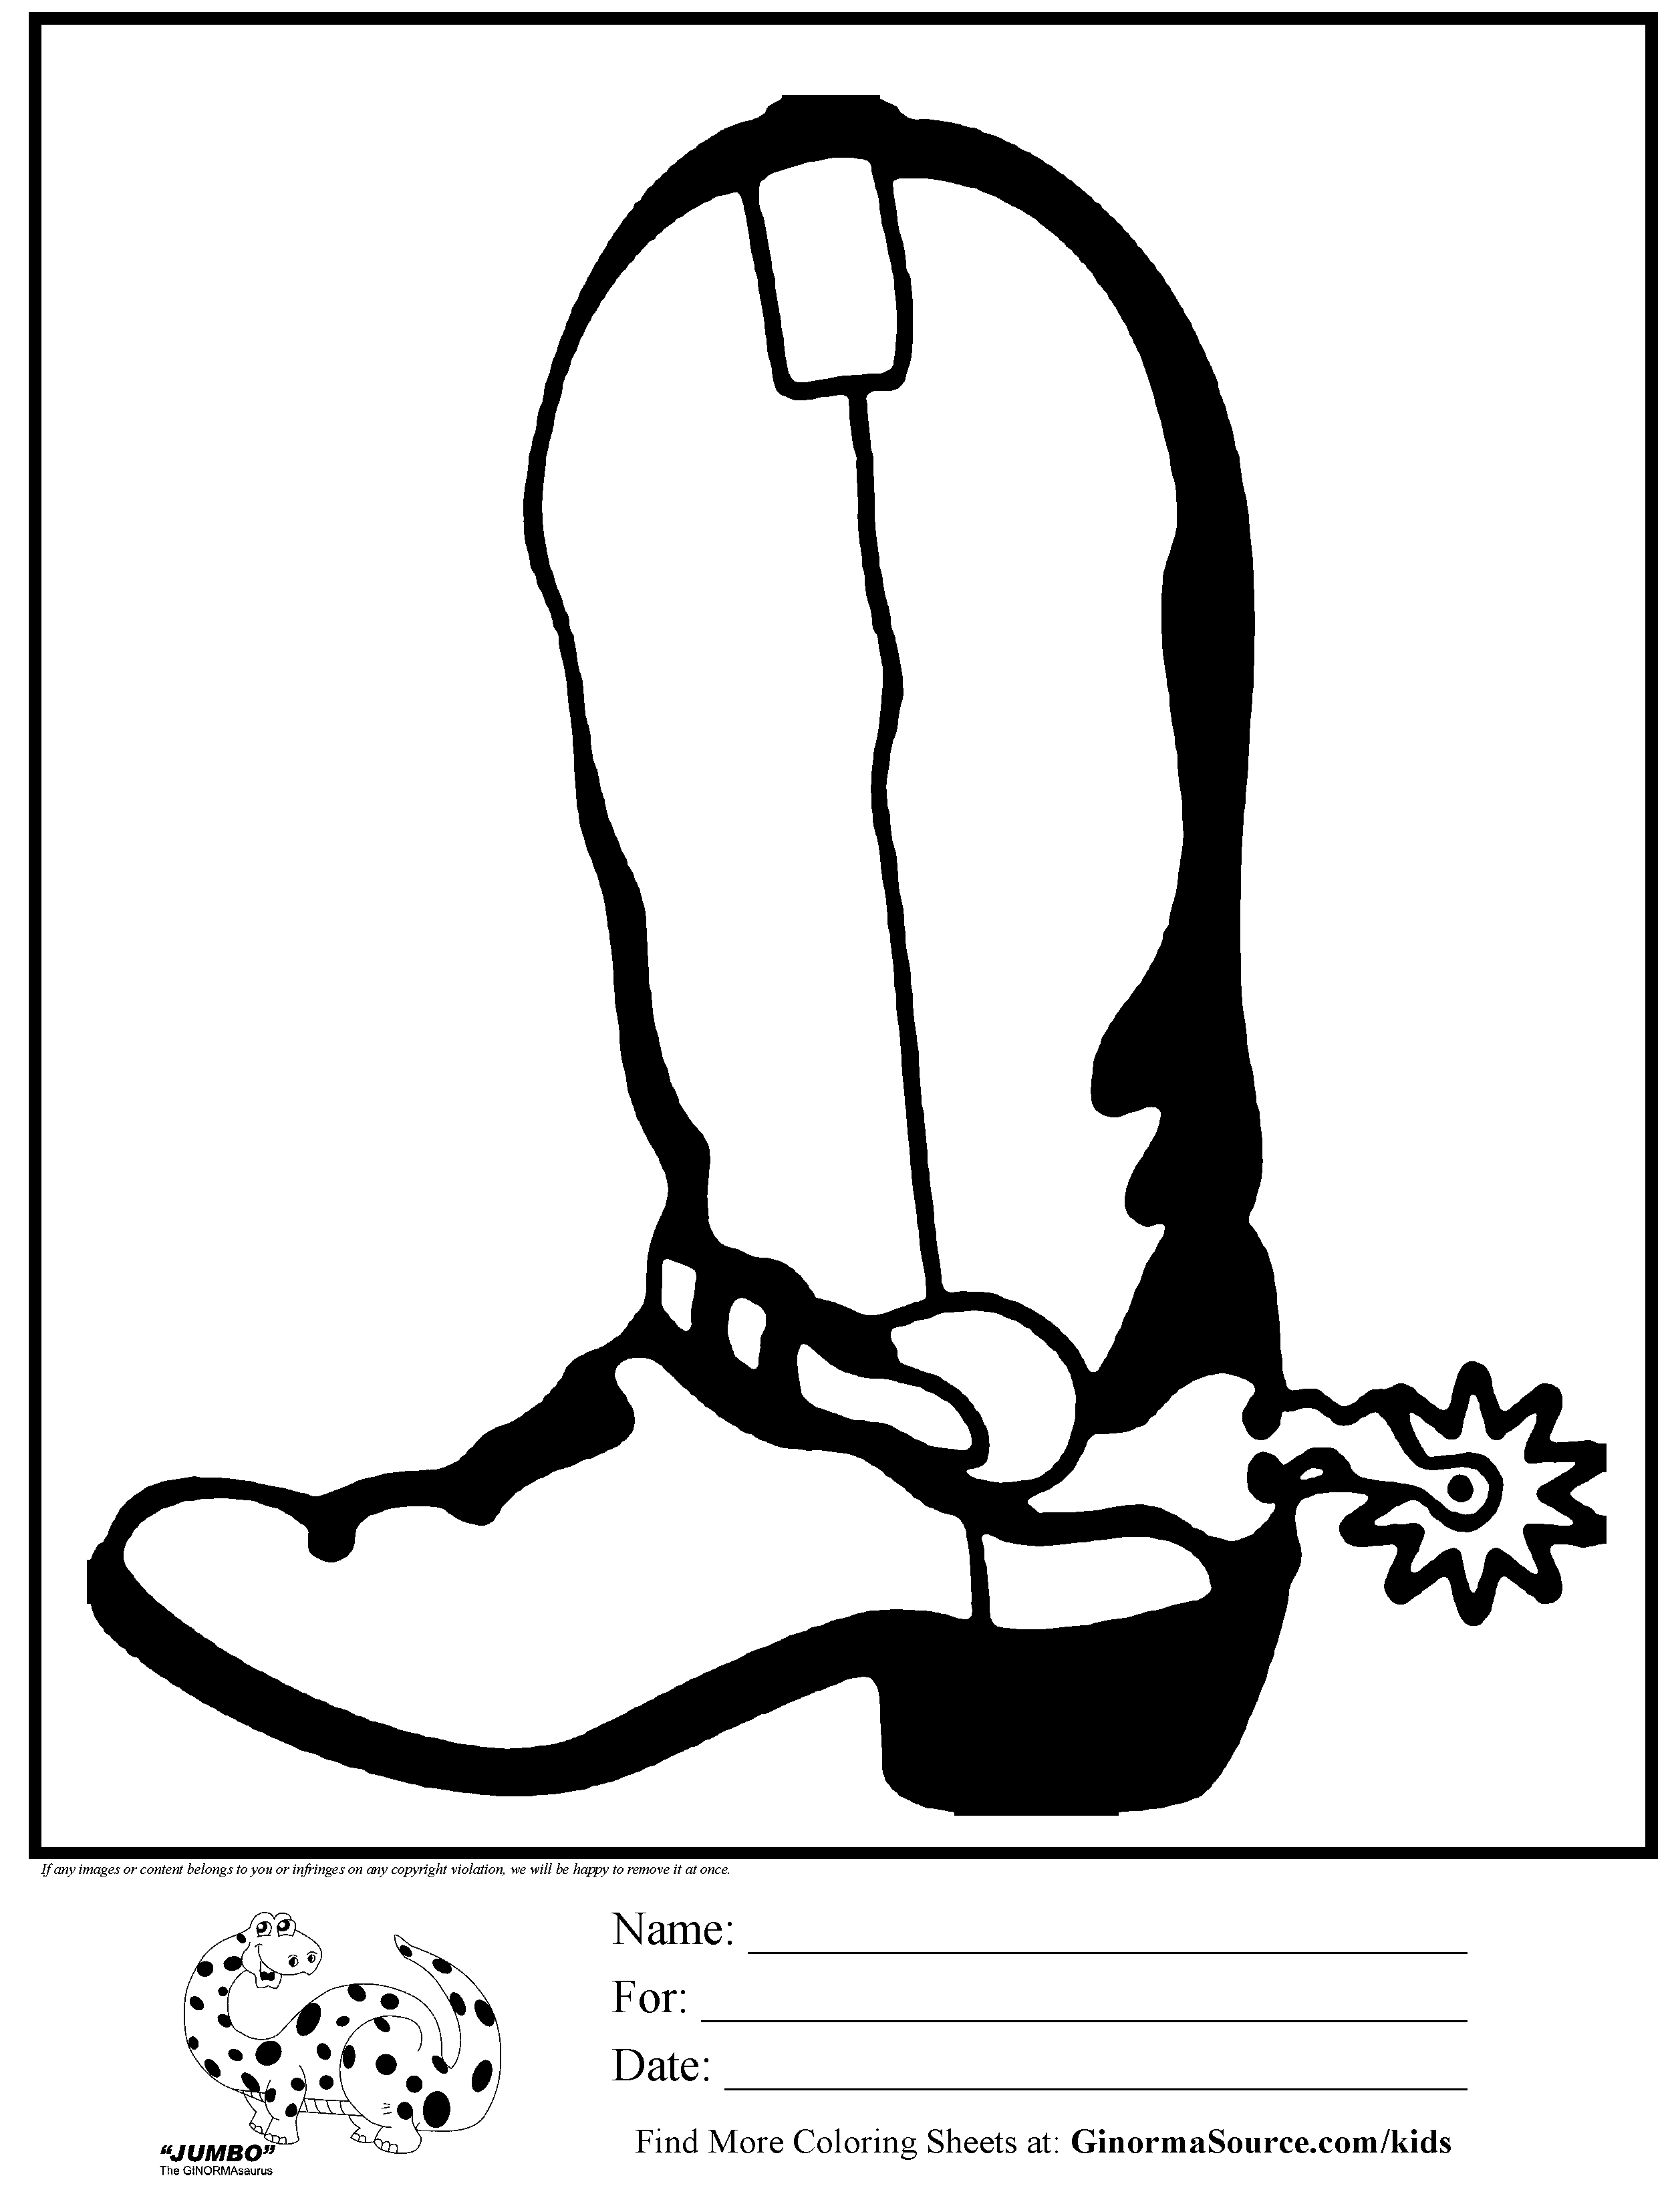 Coloring Pages For Boots Coloring